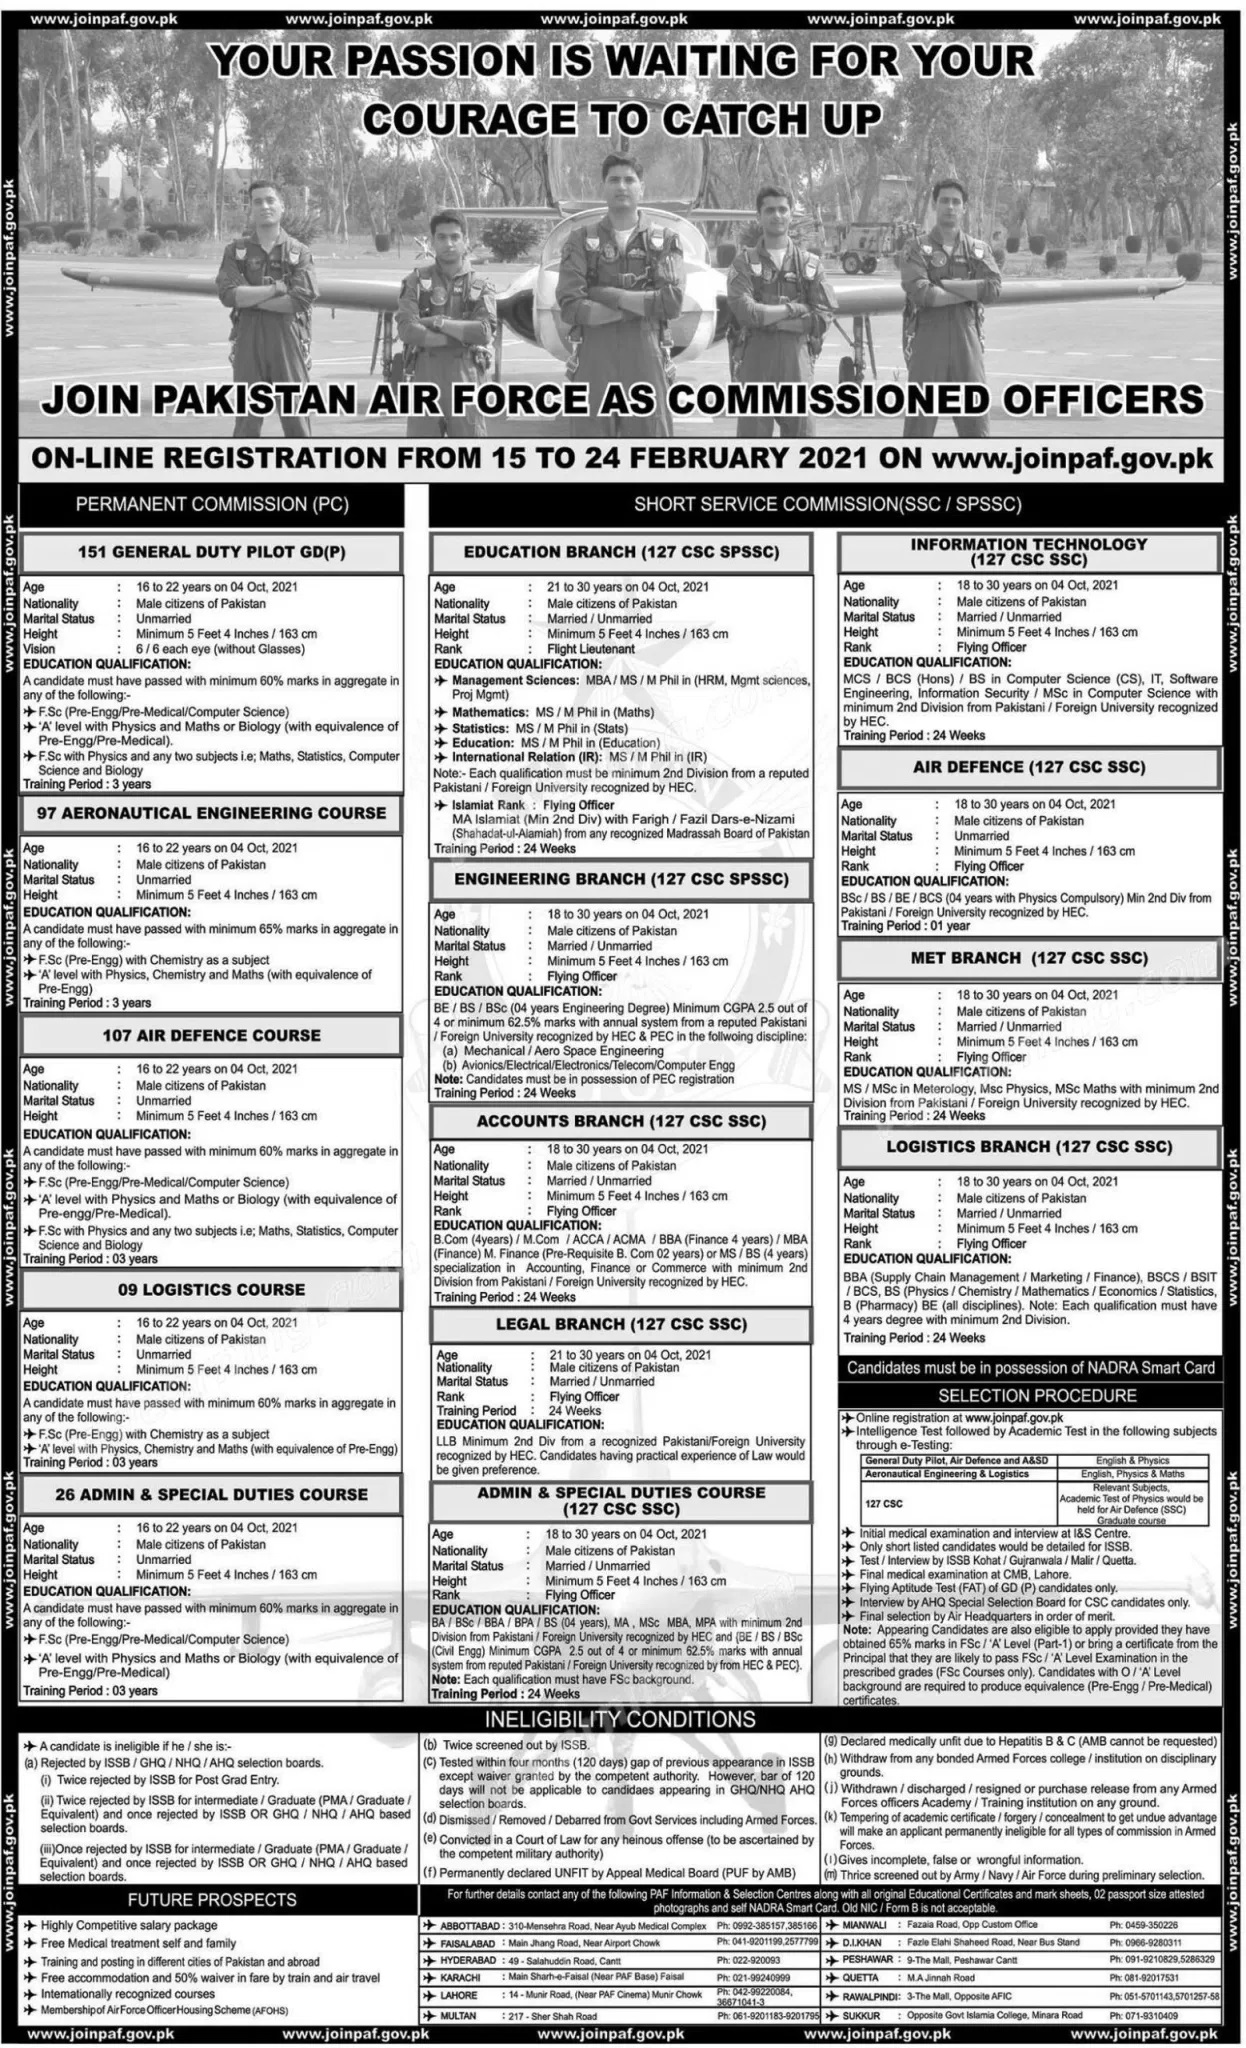 PAF Pakistan Air Force Commission Officer Call Letter